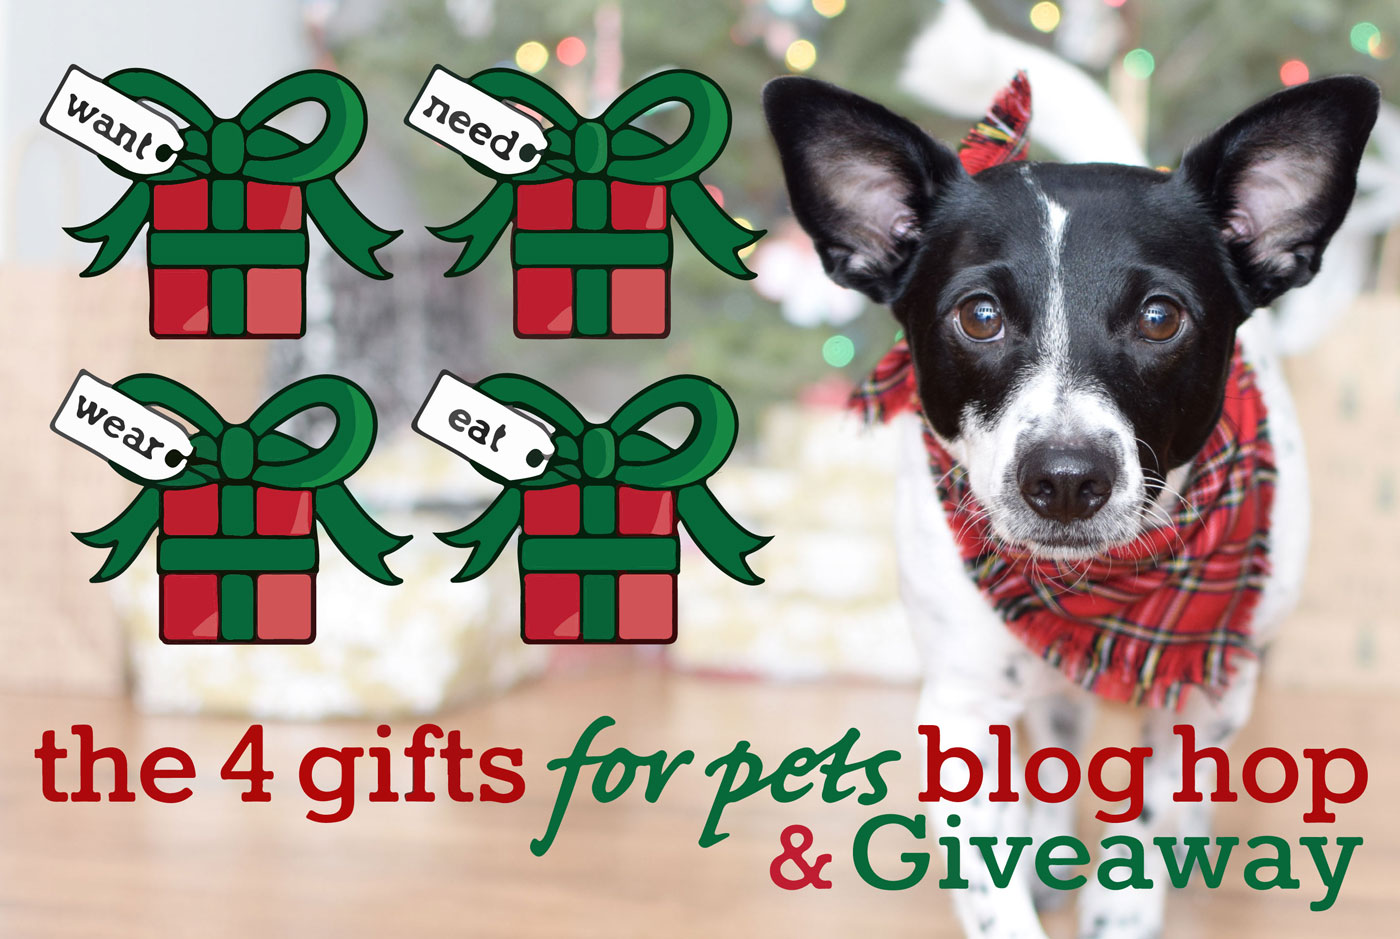 4 gifts for pets giveaway dog rescue edition the broke dog